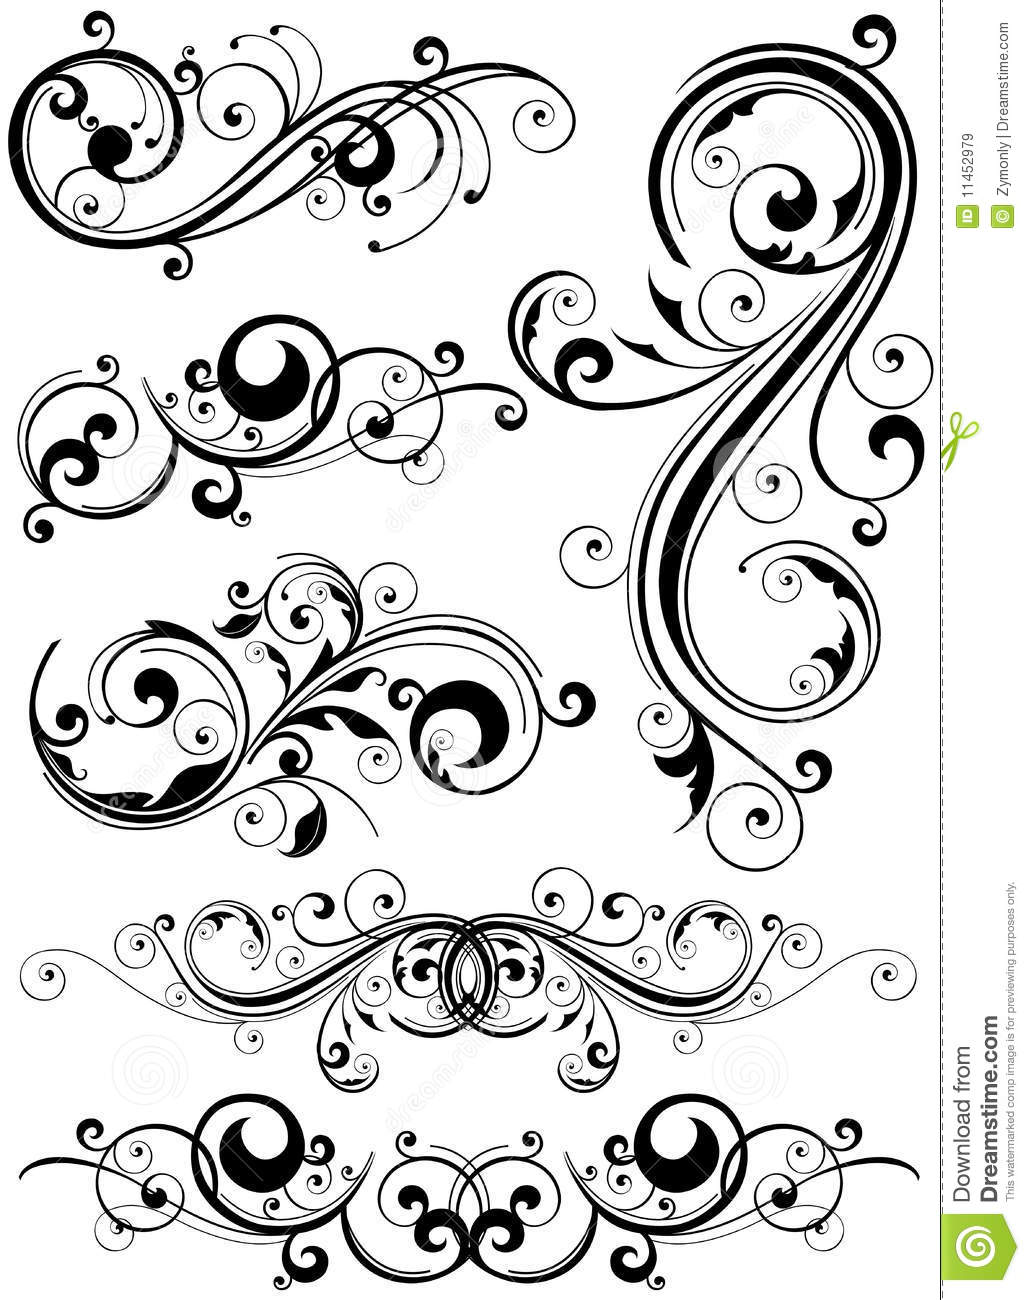 Floral Design Elements Royalty Free Stock Images - Image: 11452979